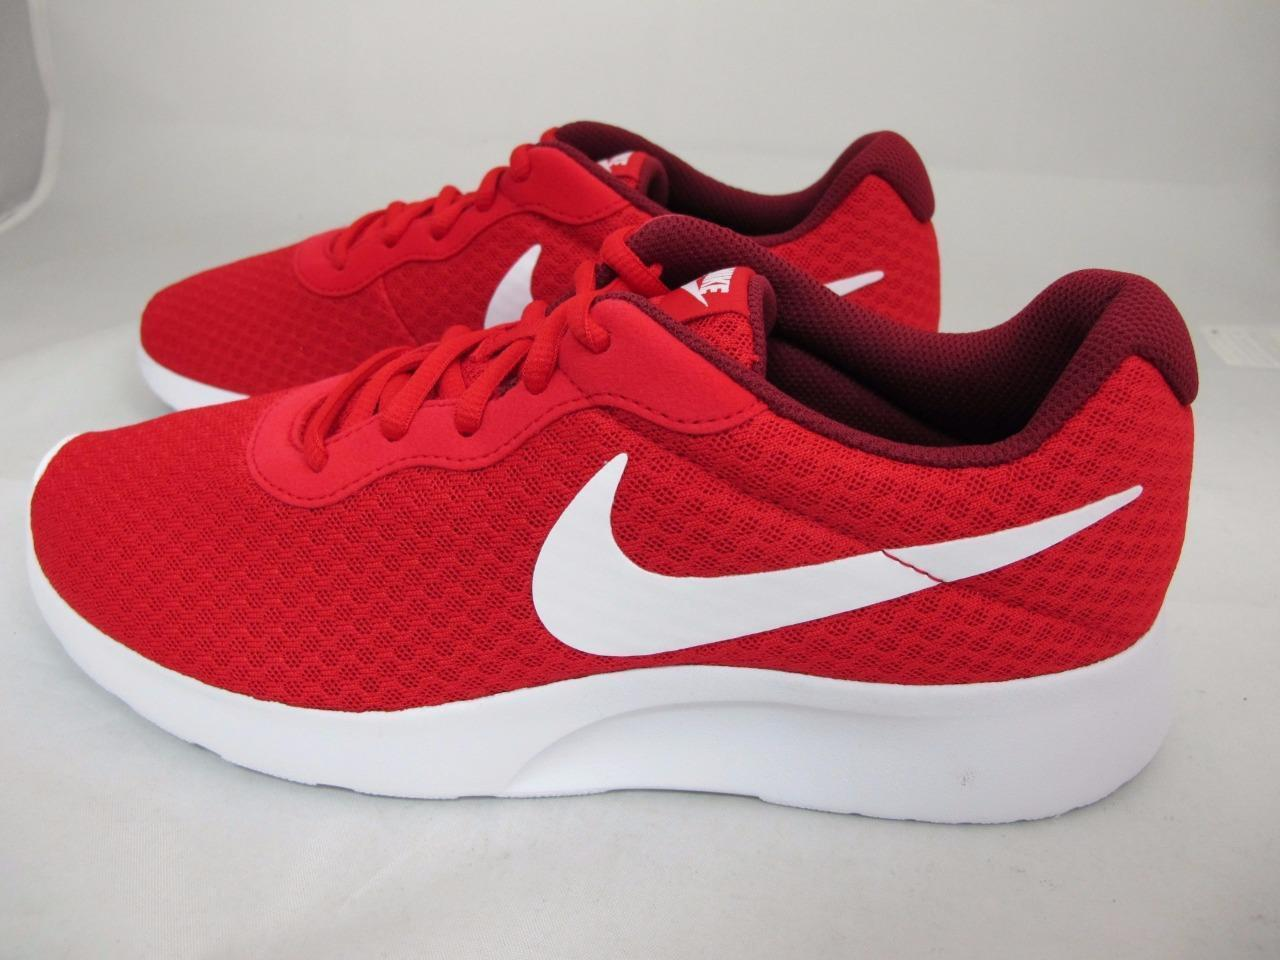 NEW MEN'S NIKE TANJUN 812654-616  Cheap and fashionable